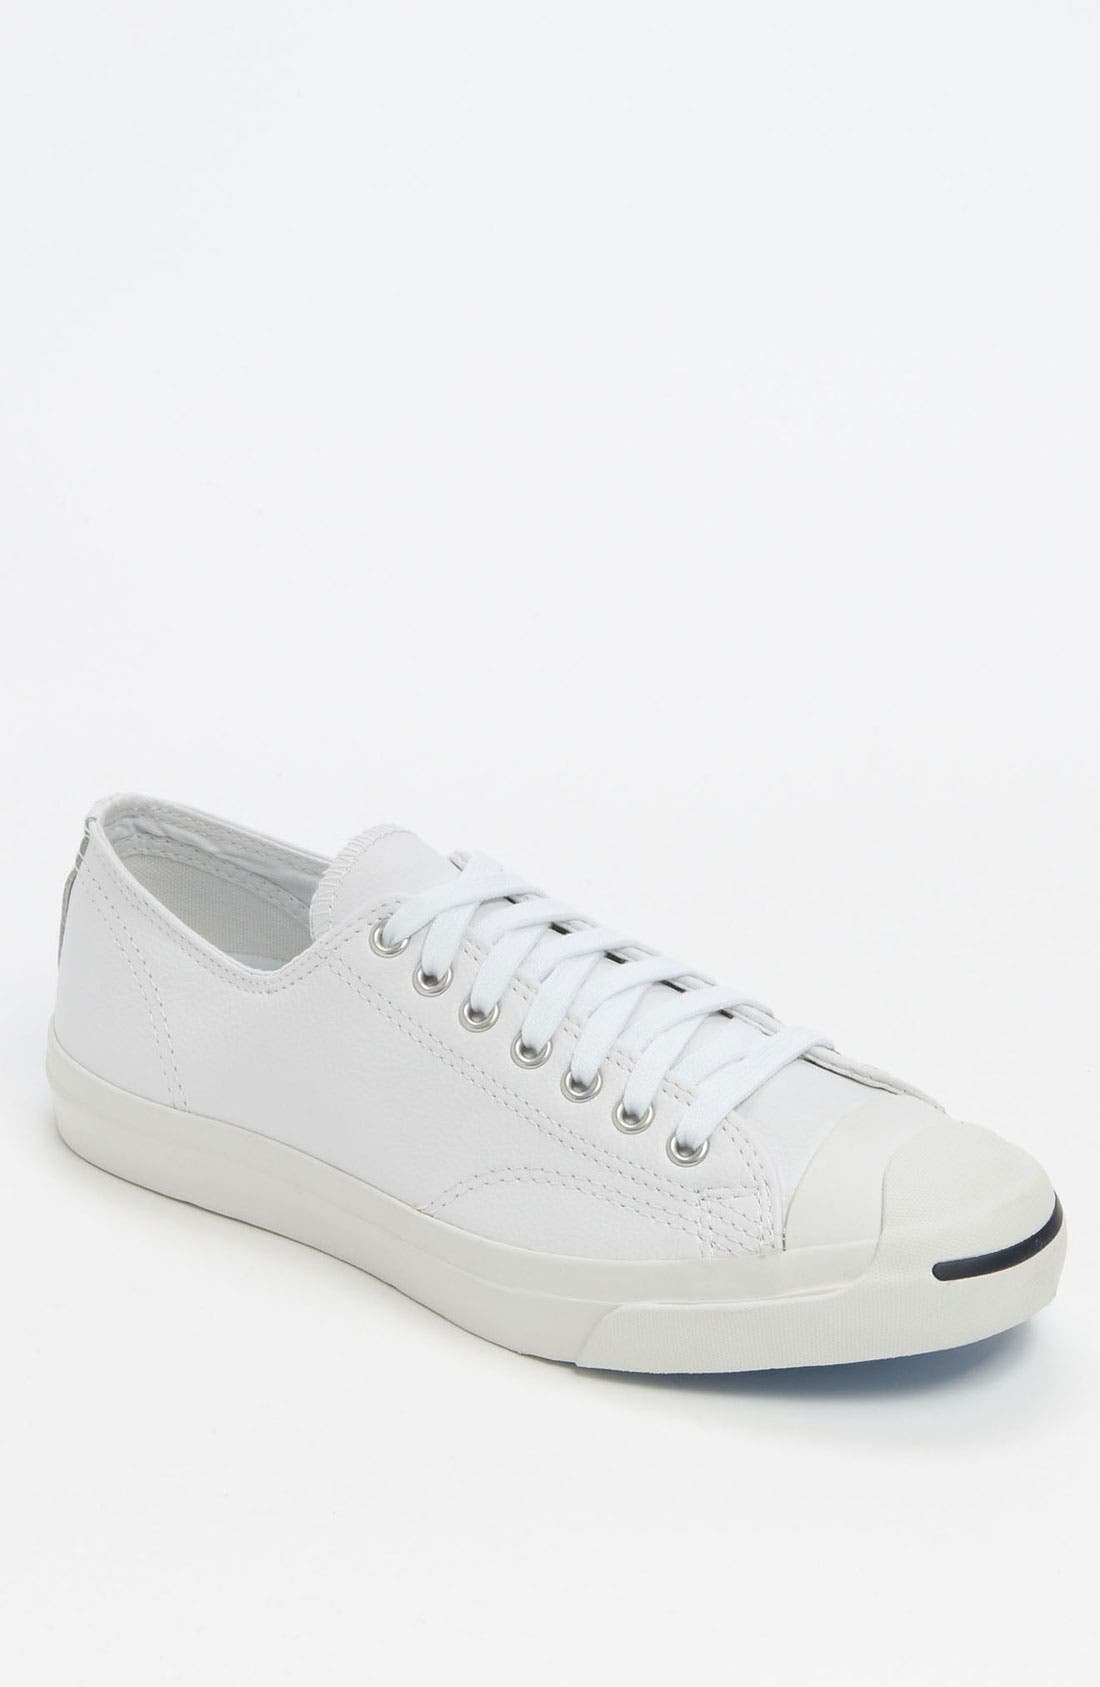 'Jack Purcell' Leather Sneaker,                             Main thumbnail 1, color,                             WHITE/ NAVY